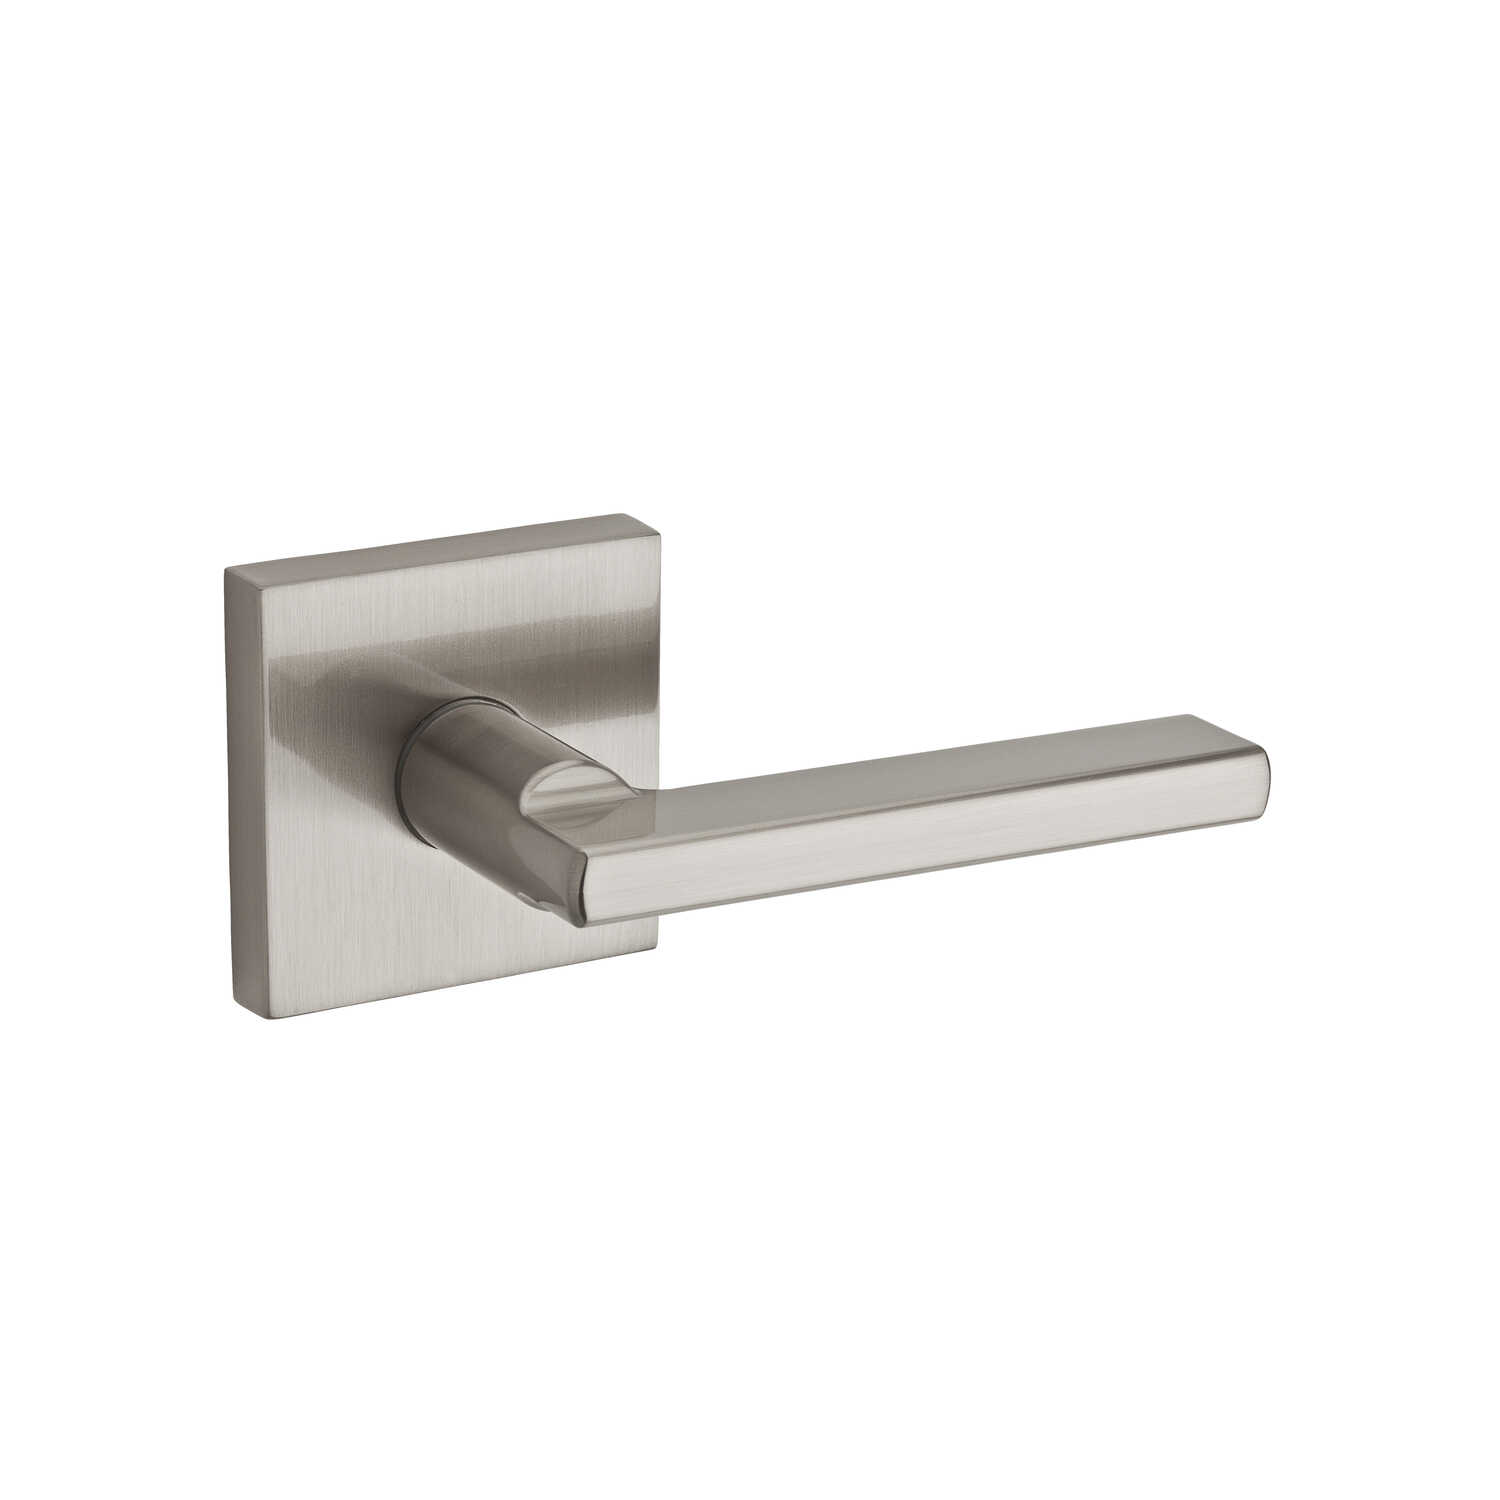 Kwikset  Halifax  Satin Nickel  Steel  Passage Lever  2 Grade Right or Left Handed